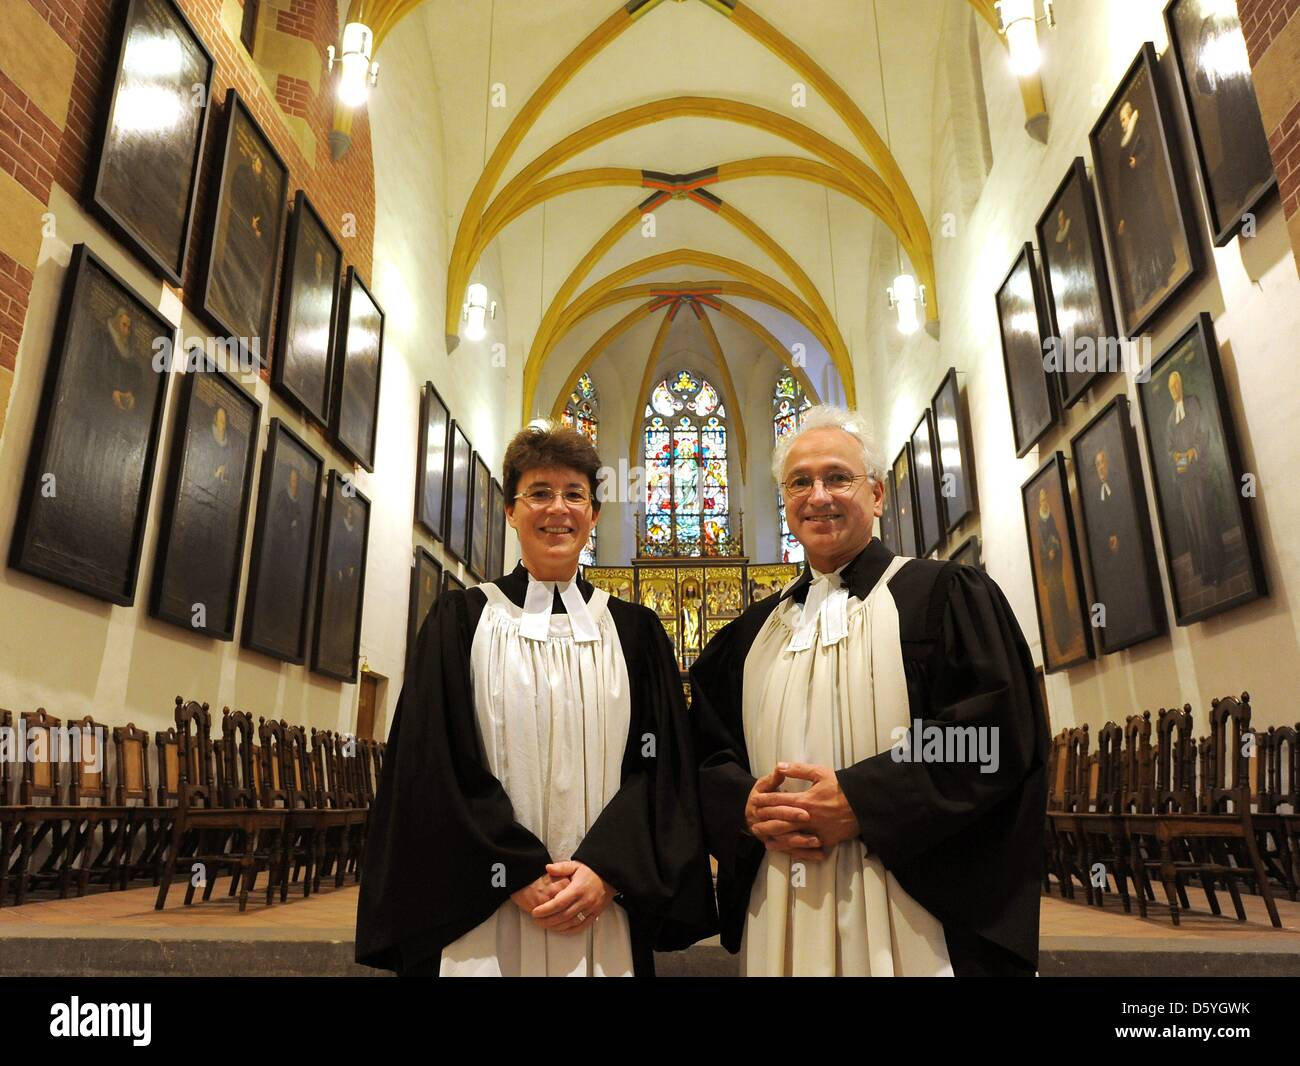 The two pastors Christian Wolf and Britta Taddiken are pictured after a church service held at the St. Thomas Church - Stock Image